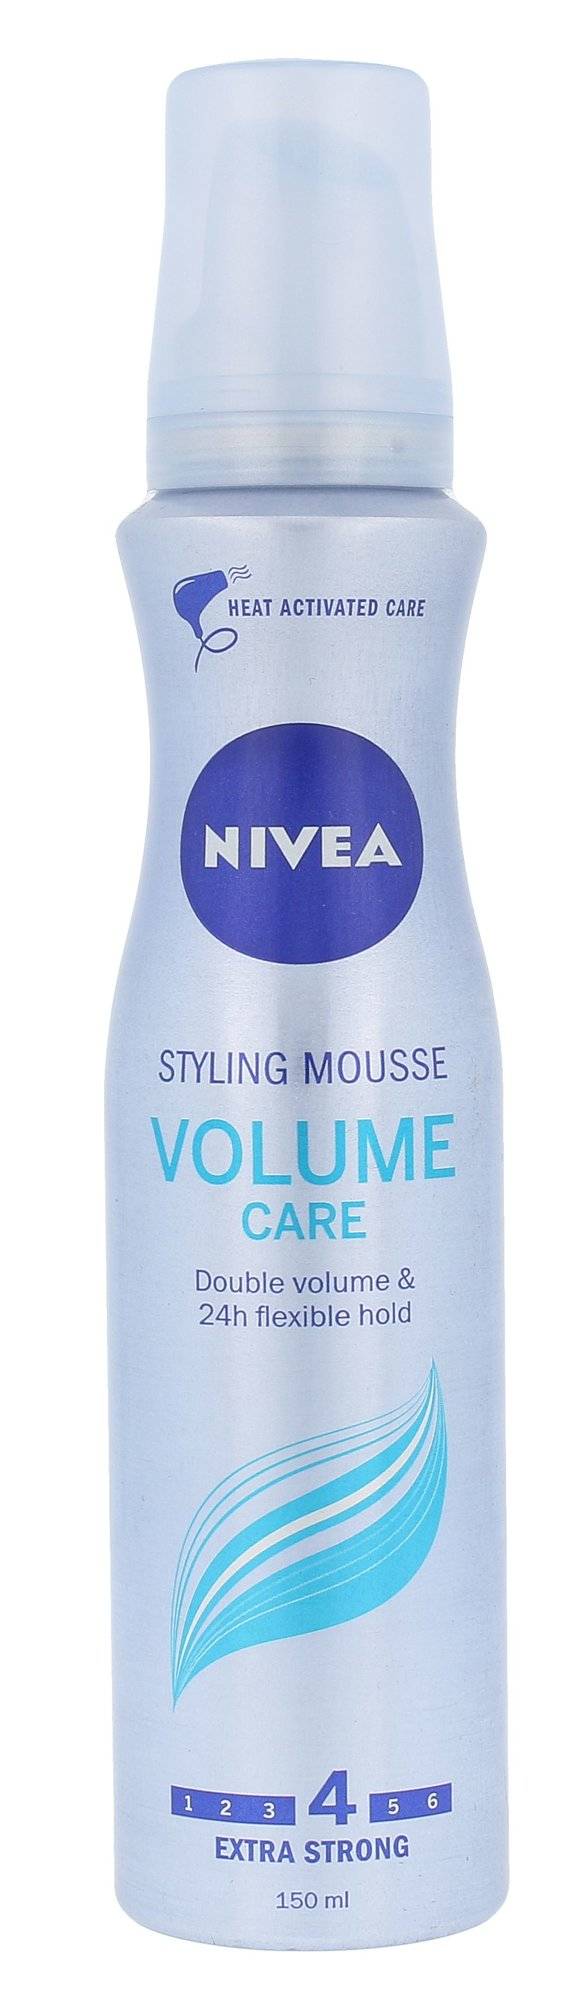 Nivea Volume Sensation Styling Mousse Cosmetic 150ml